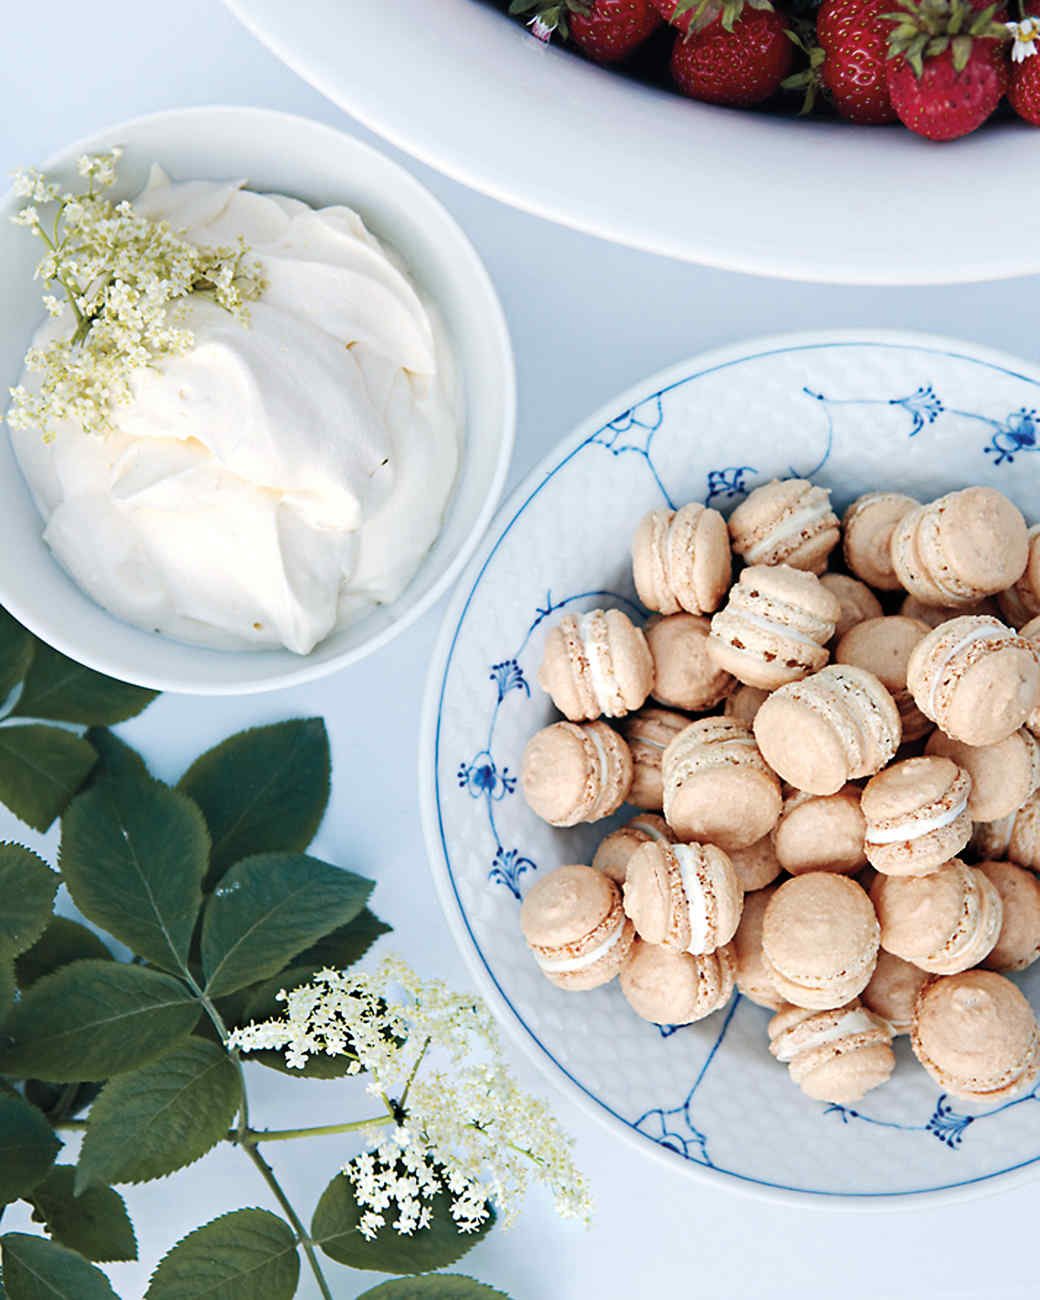 Toasted-Almond Macarons with White Chocolate